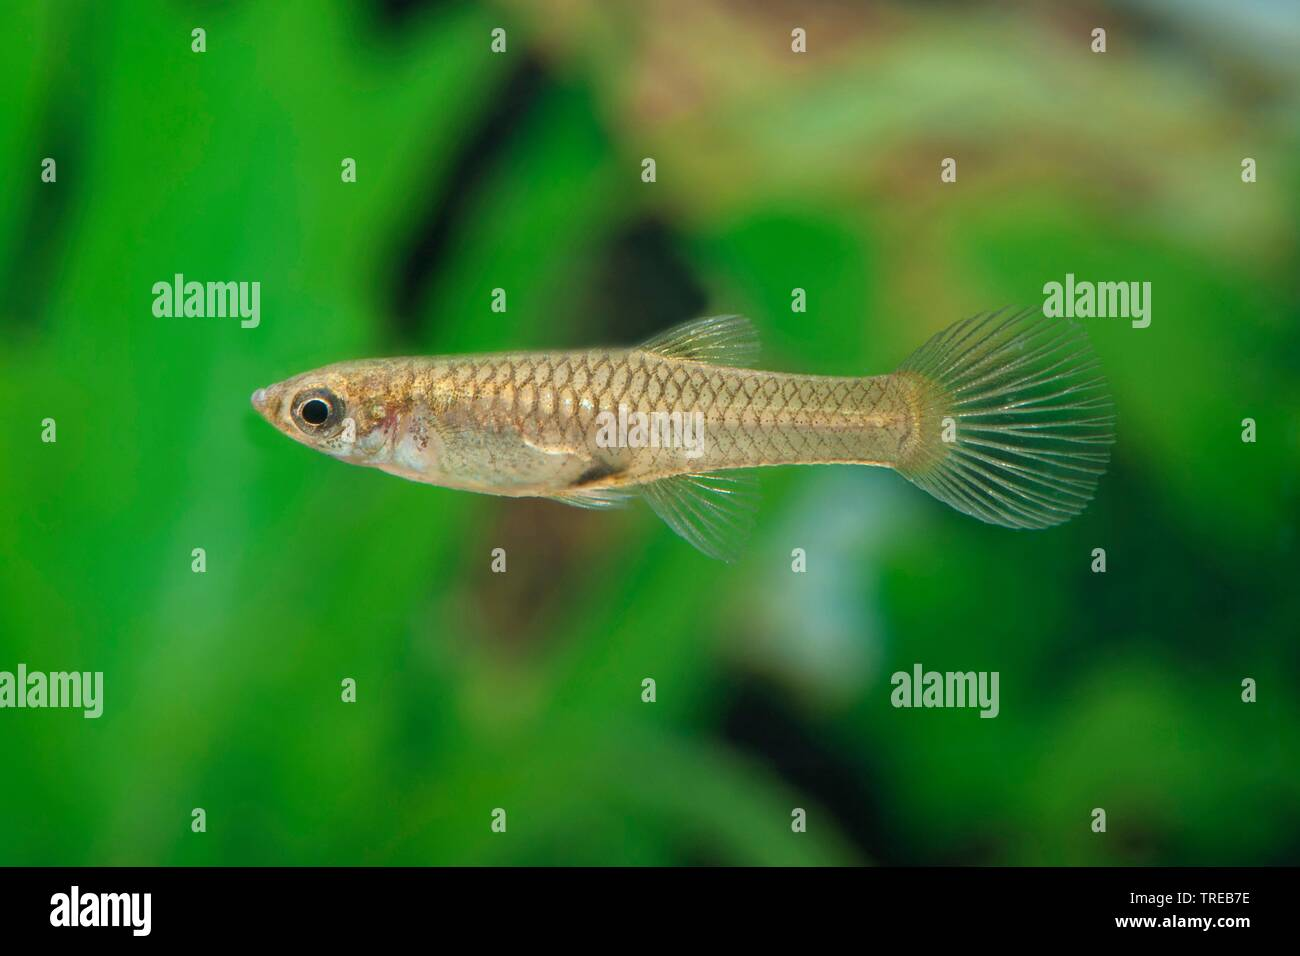 Endlers Guppy (Poecilia wingei), Zuchtform Rio Oro | Endler's guppy, Endler's livebearer, Dovermolly (Poecilia wingei), breeding form Rio Oro | BLWS52 - Stock Image